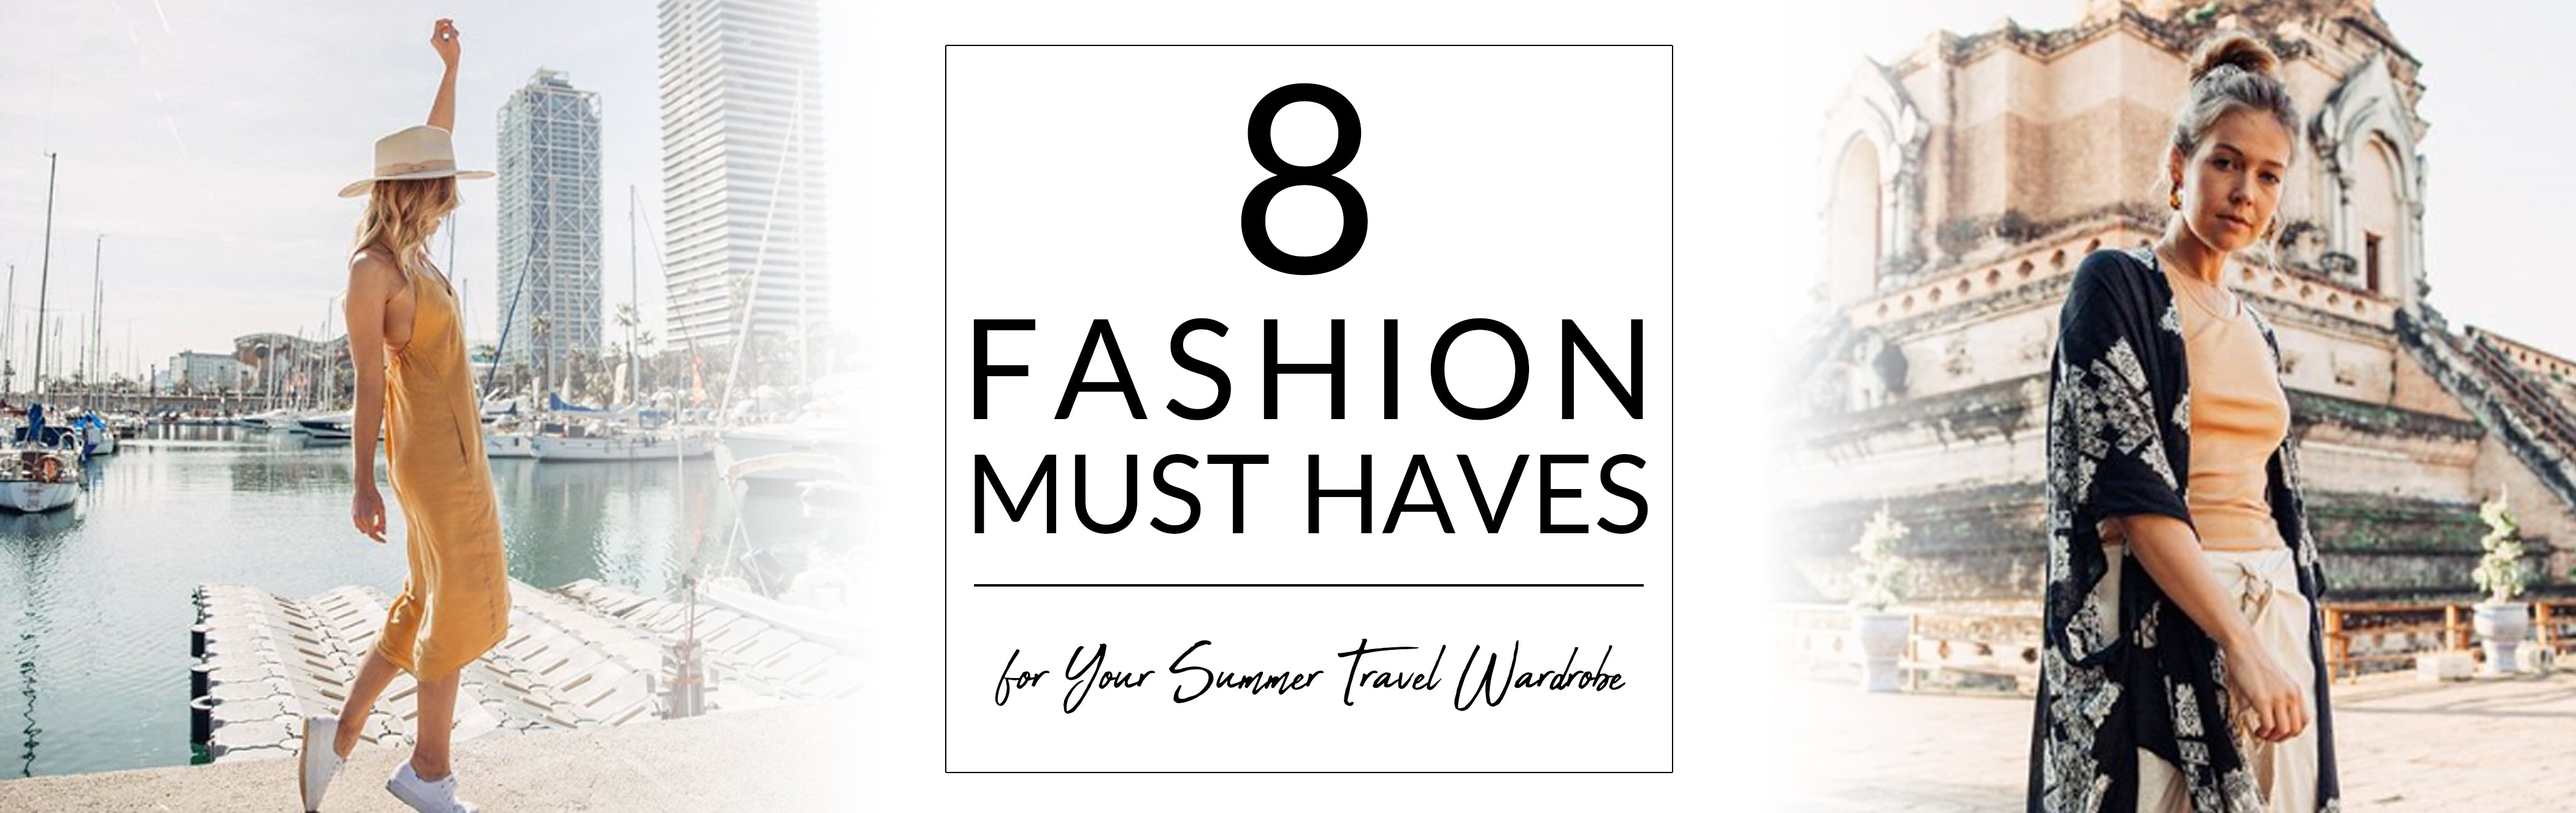 8 Fashion Must Haves for Your Summer Travel Wardrobe